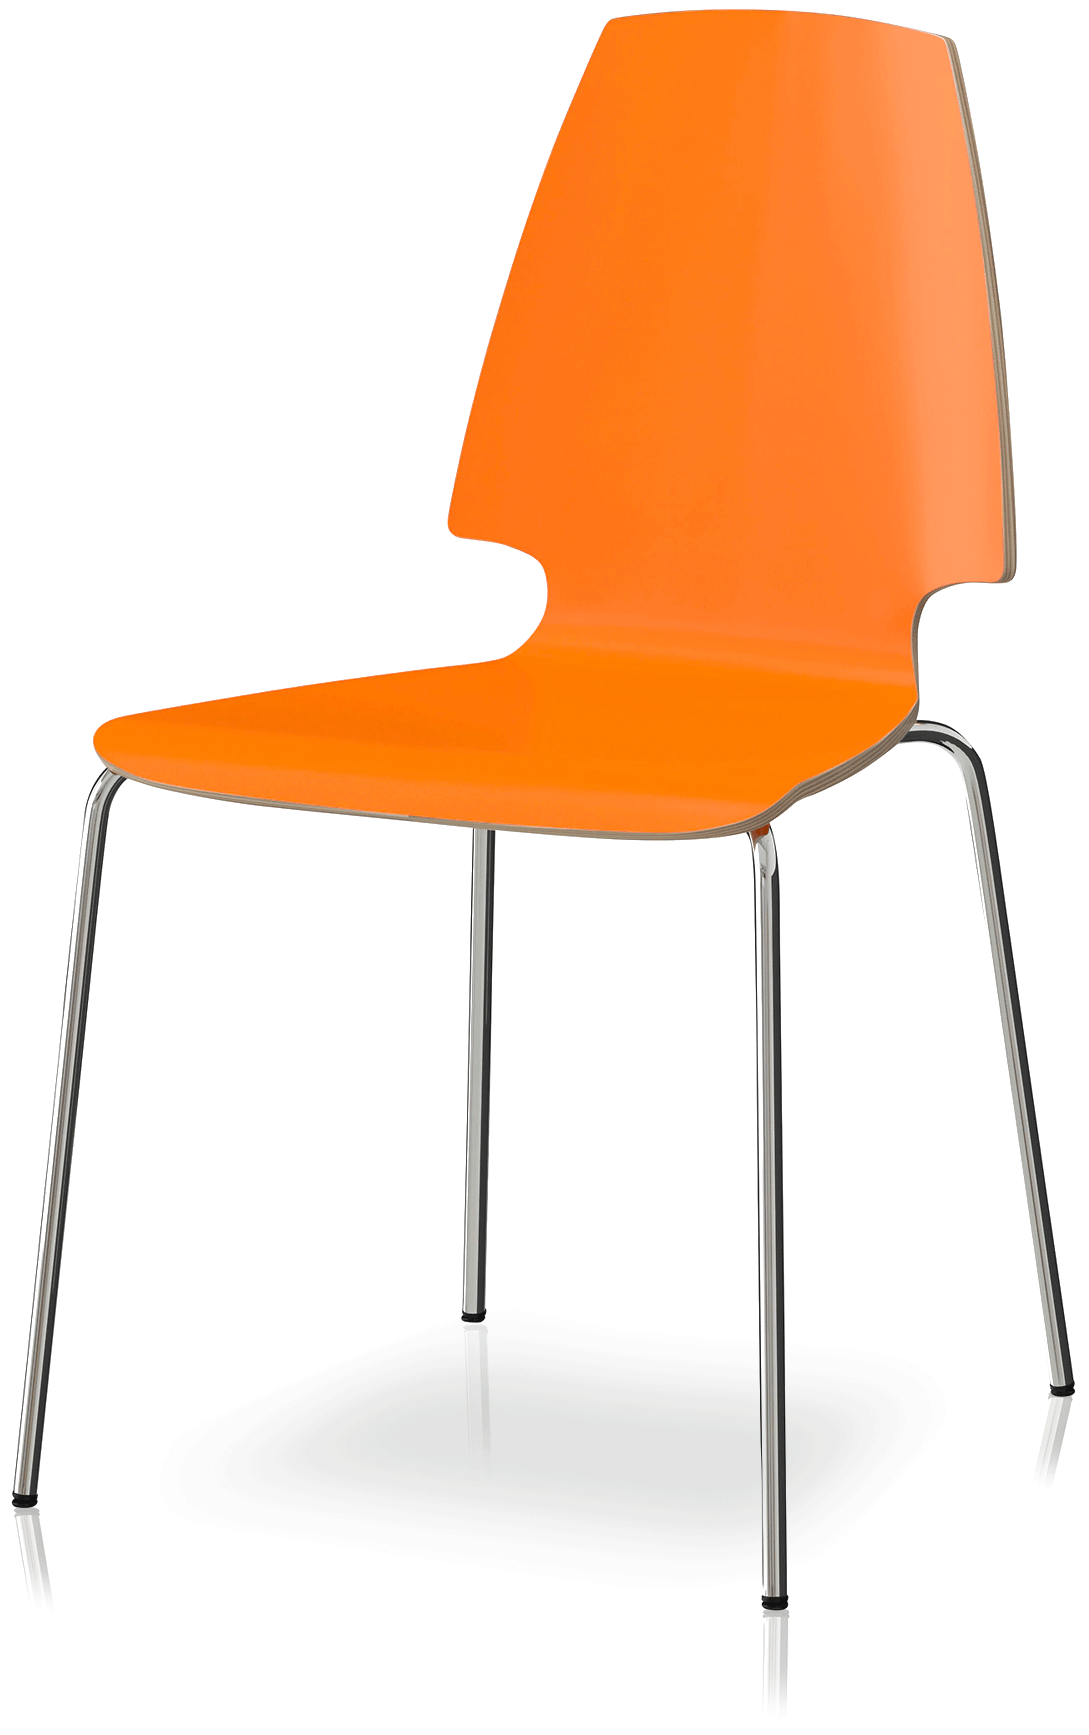 Second Hand Chair, Mobile Orange Moving Storage, 561 Kaikorai Valley Road Dunedin, 9011